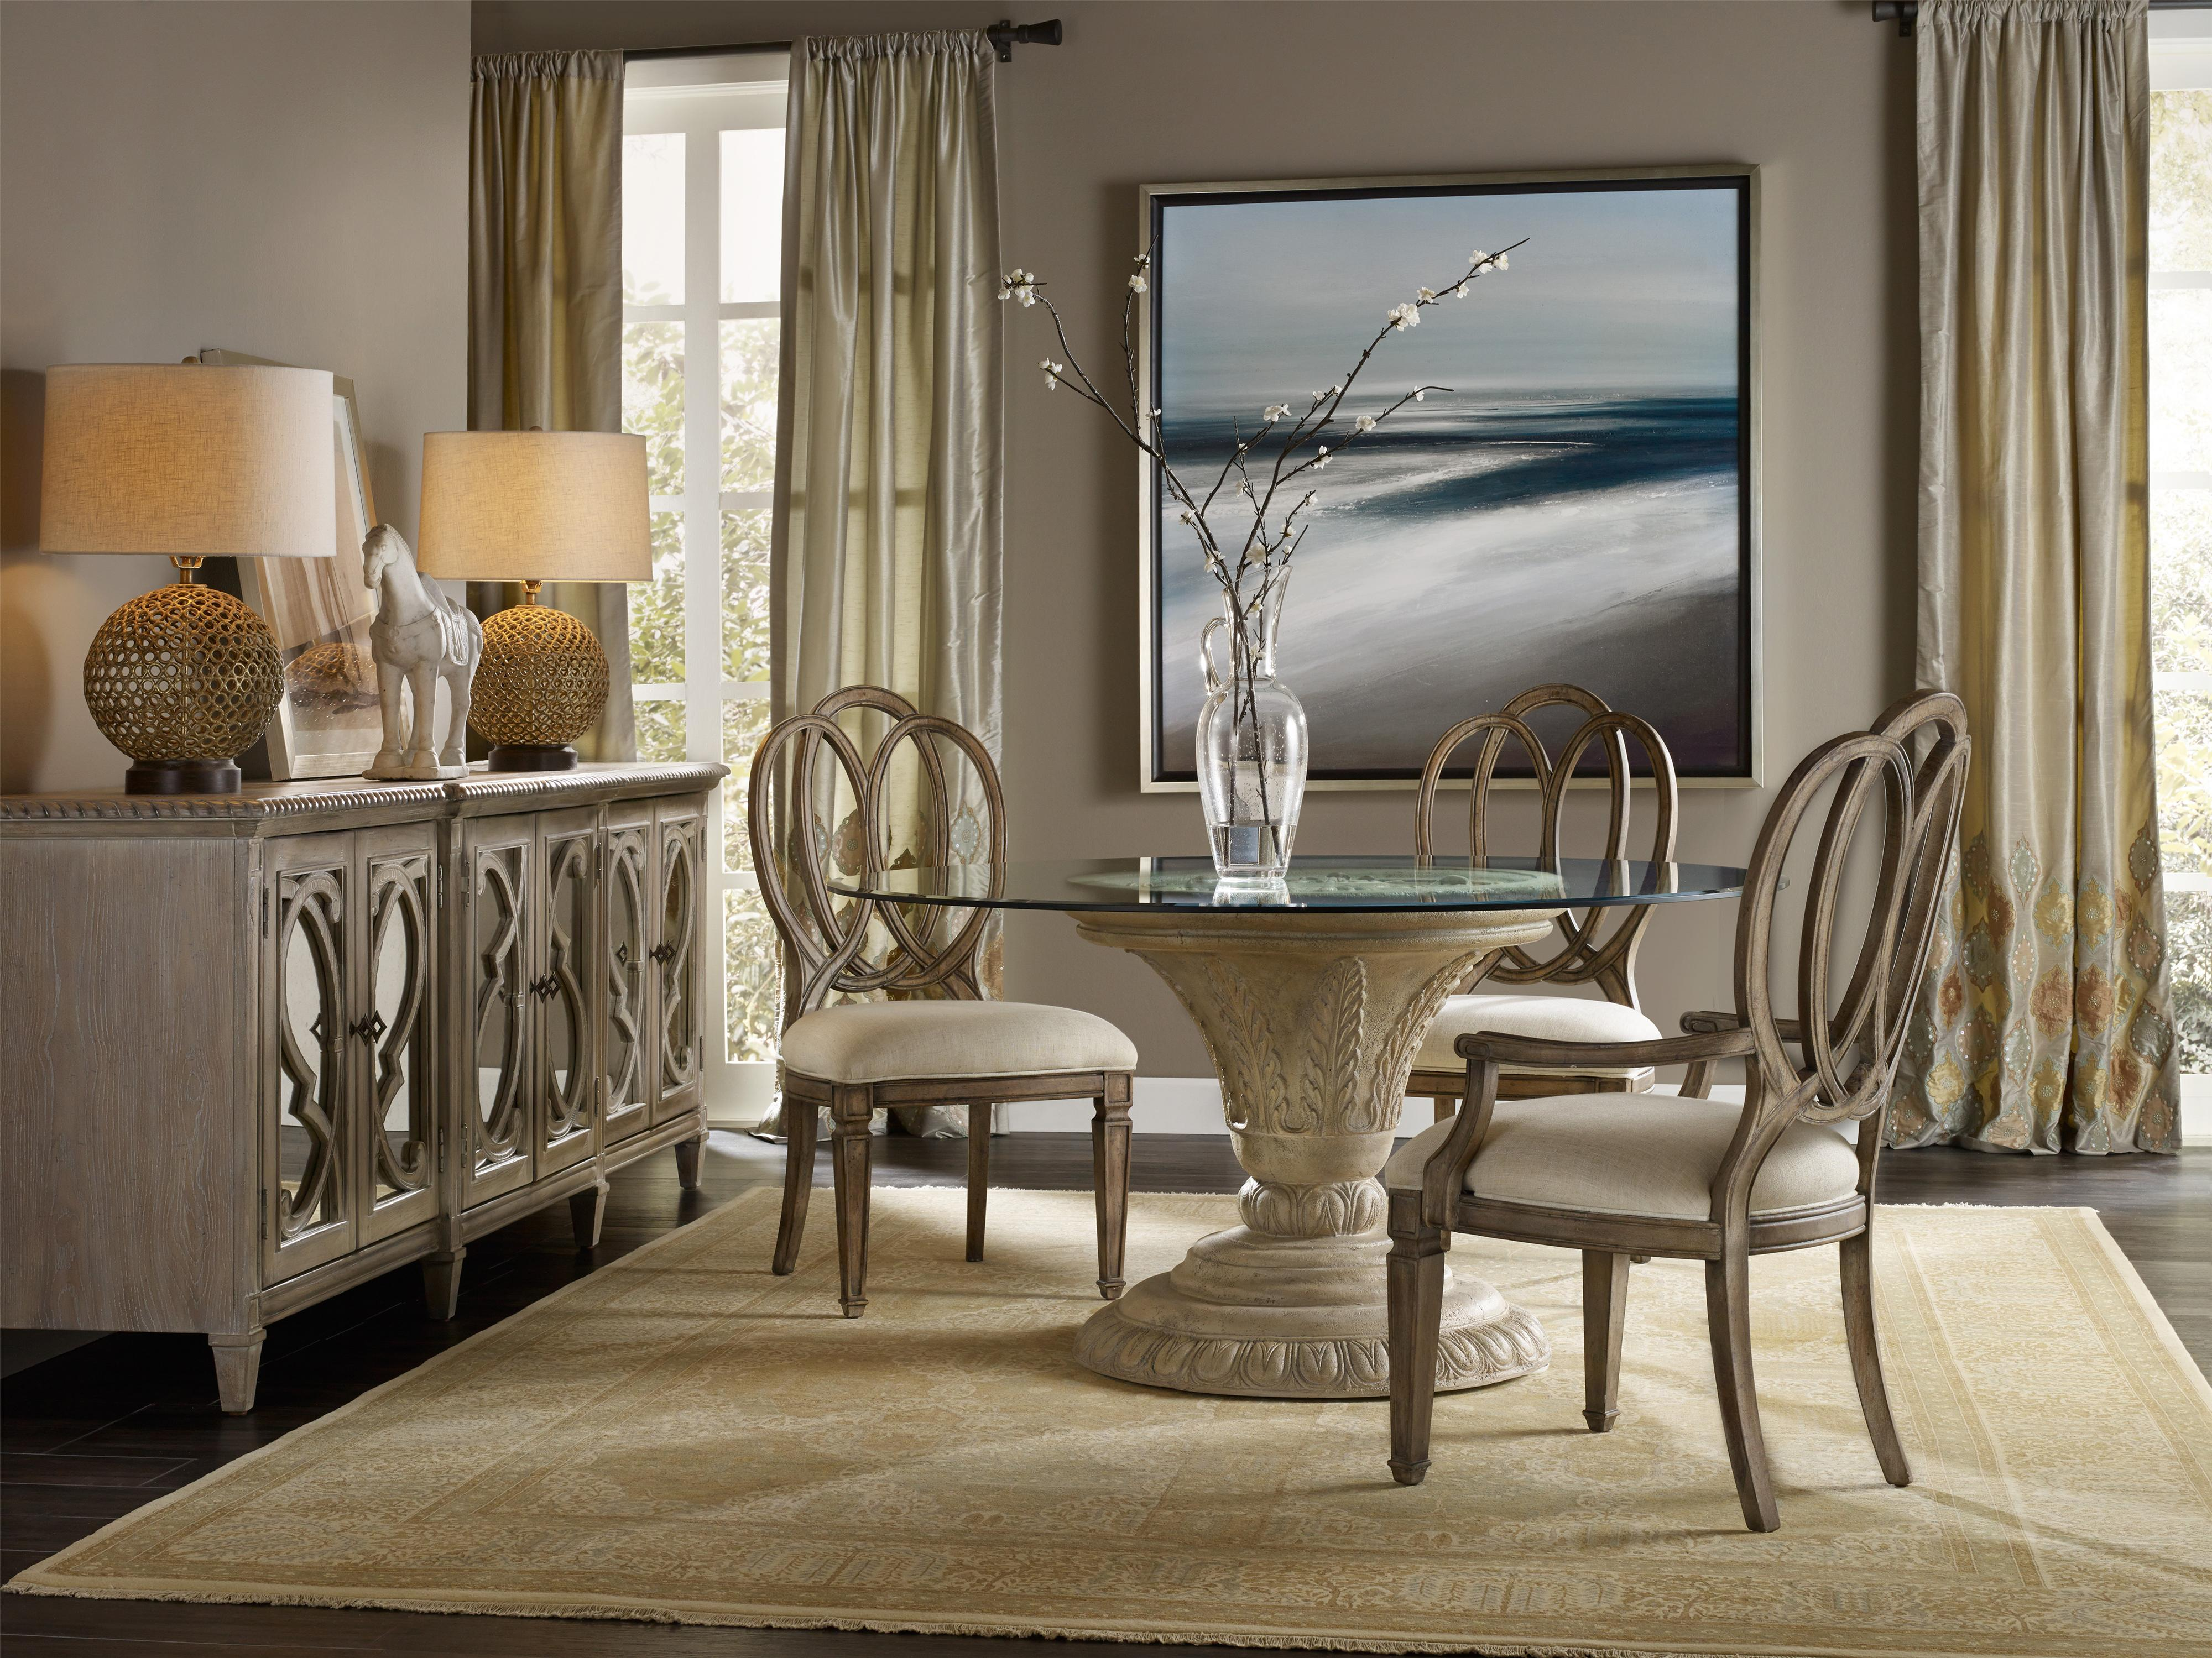 Hooker Furniture Solana Formal Dining Room Group - Item Number: 5291 F Dining Room 3